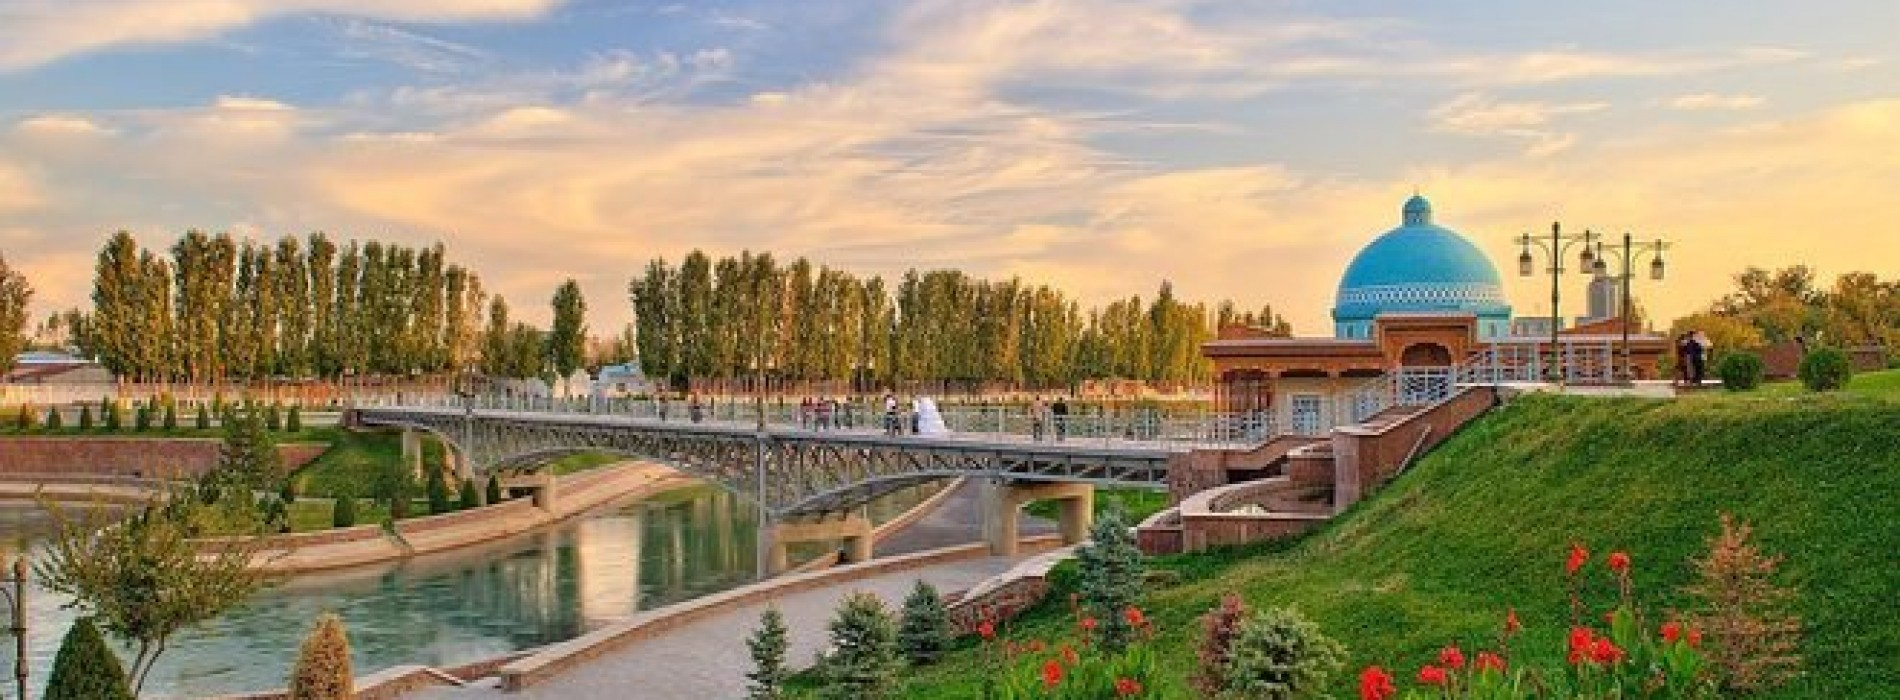 Tashkent, Bishkek becoming the new Pattaya for Indian travellers